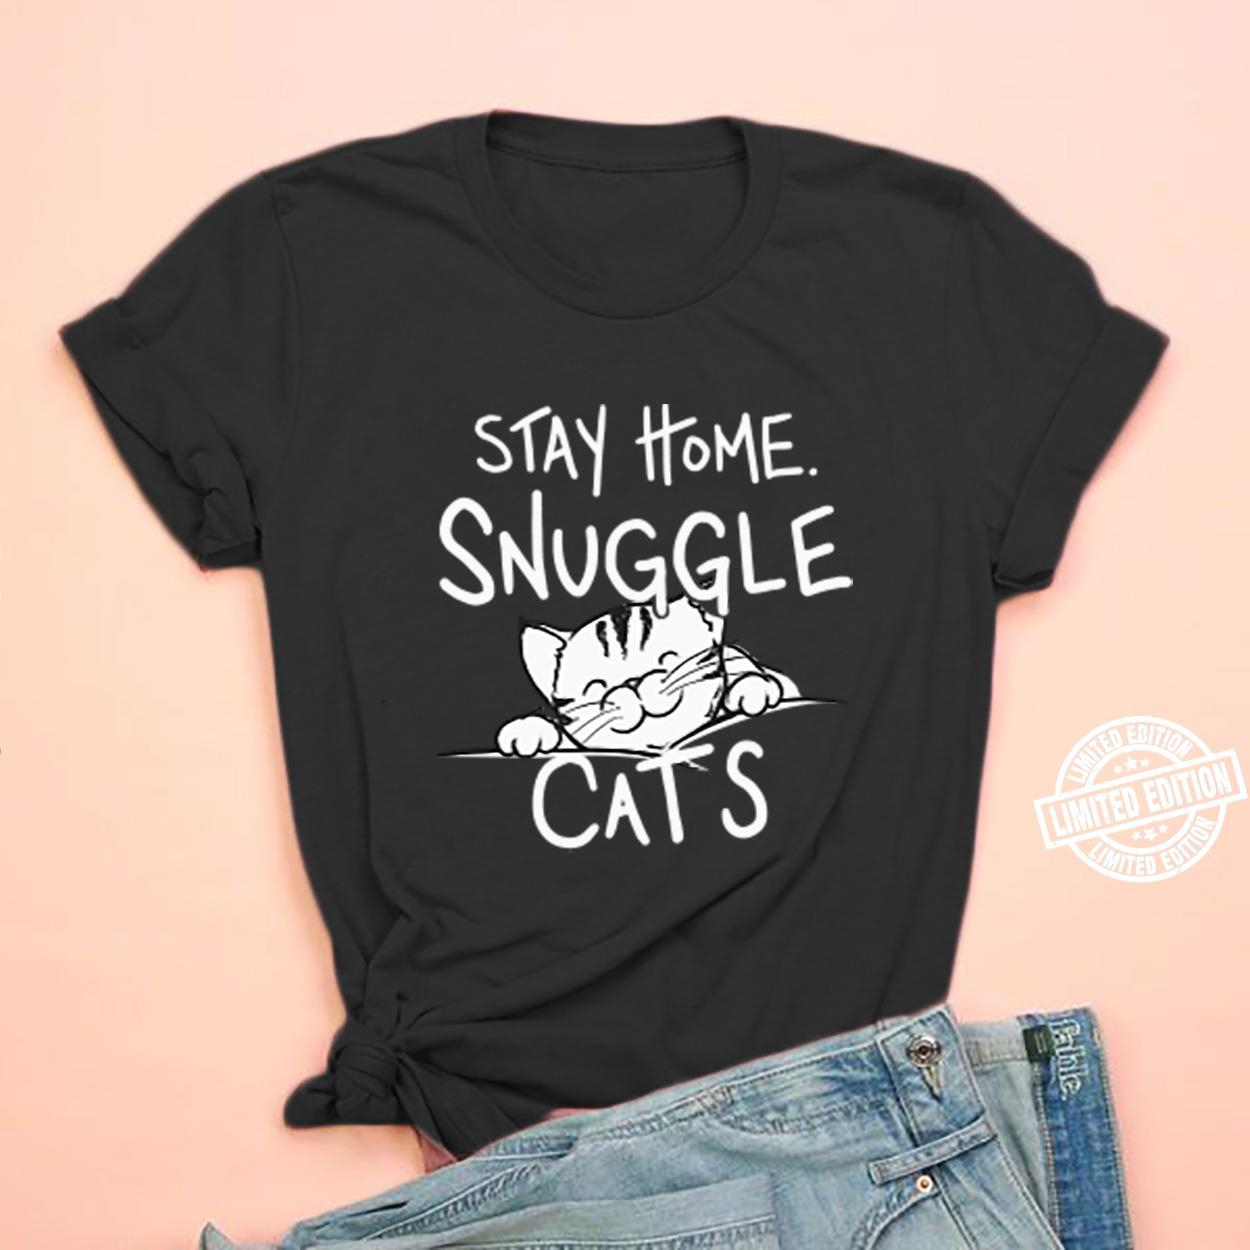 Stay home snuggle cats shirt